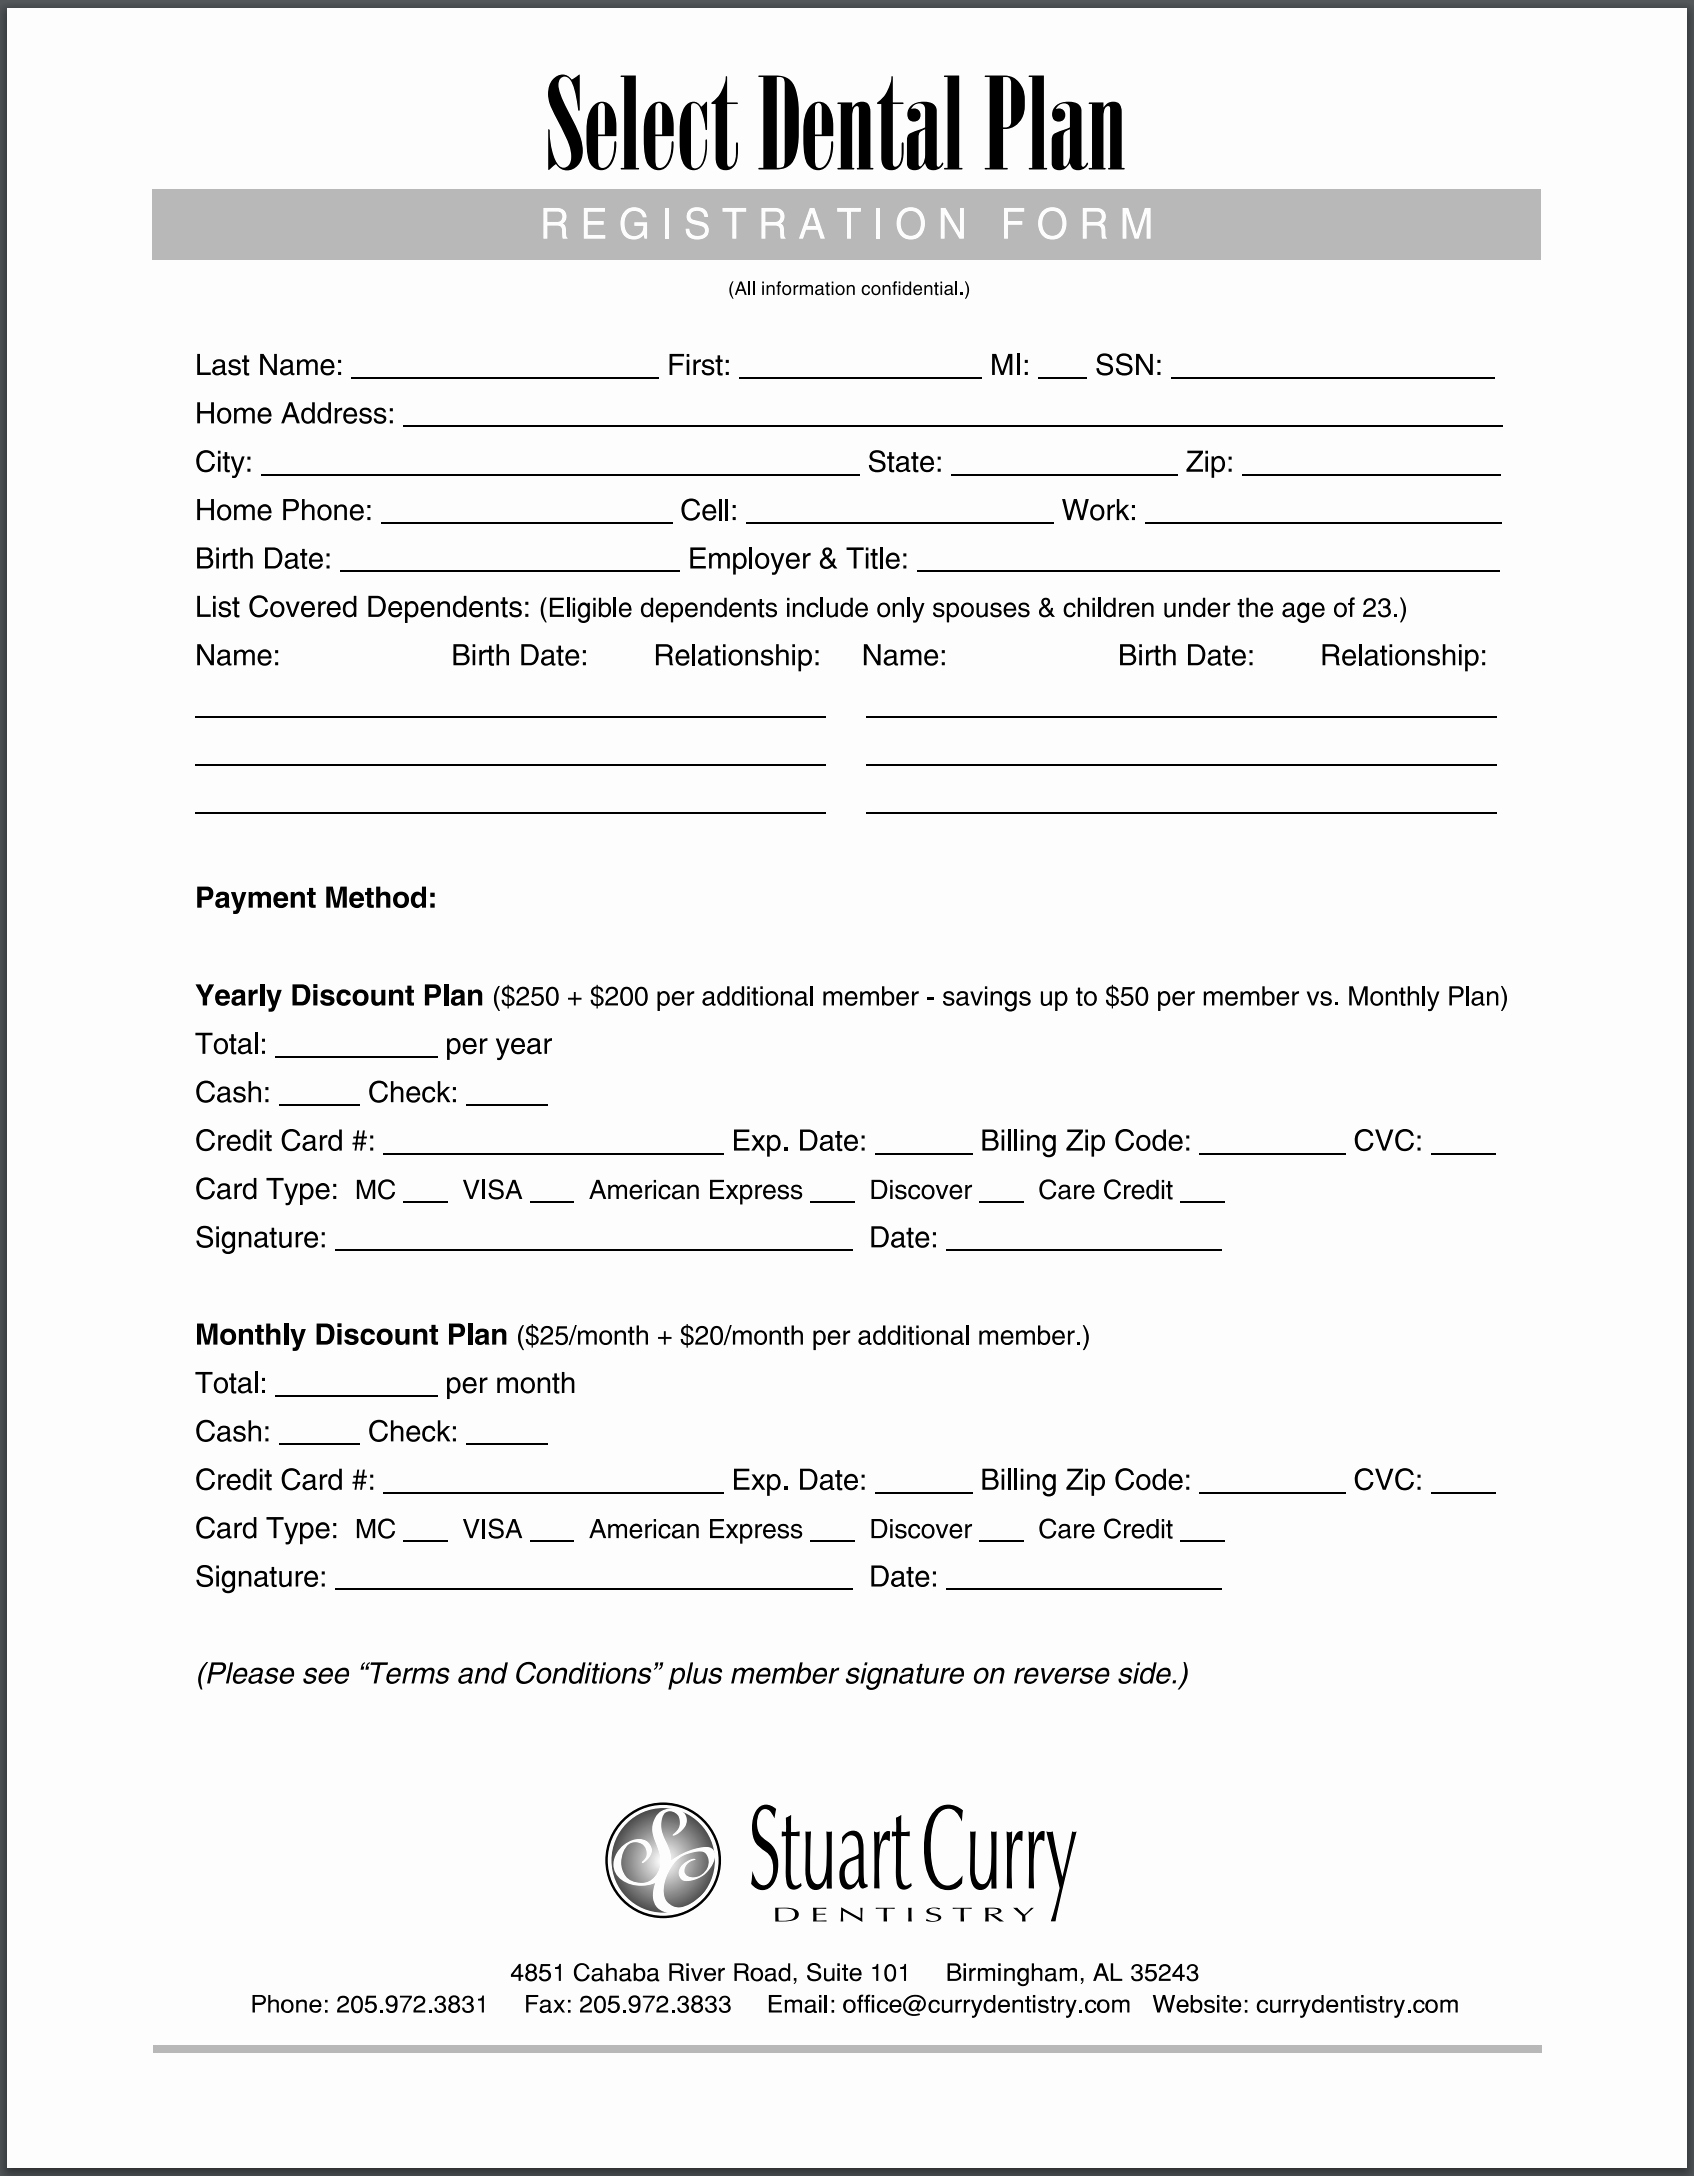 Dental Office forms Templates Luxury Stuart Curry Dental Plan Insurance form